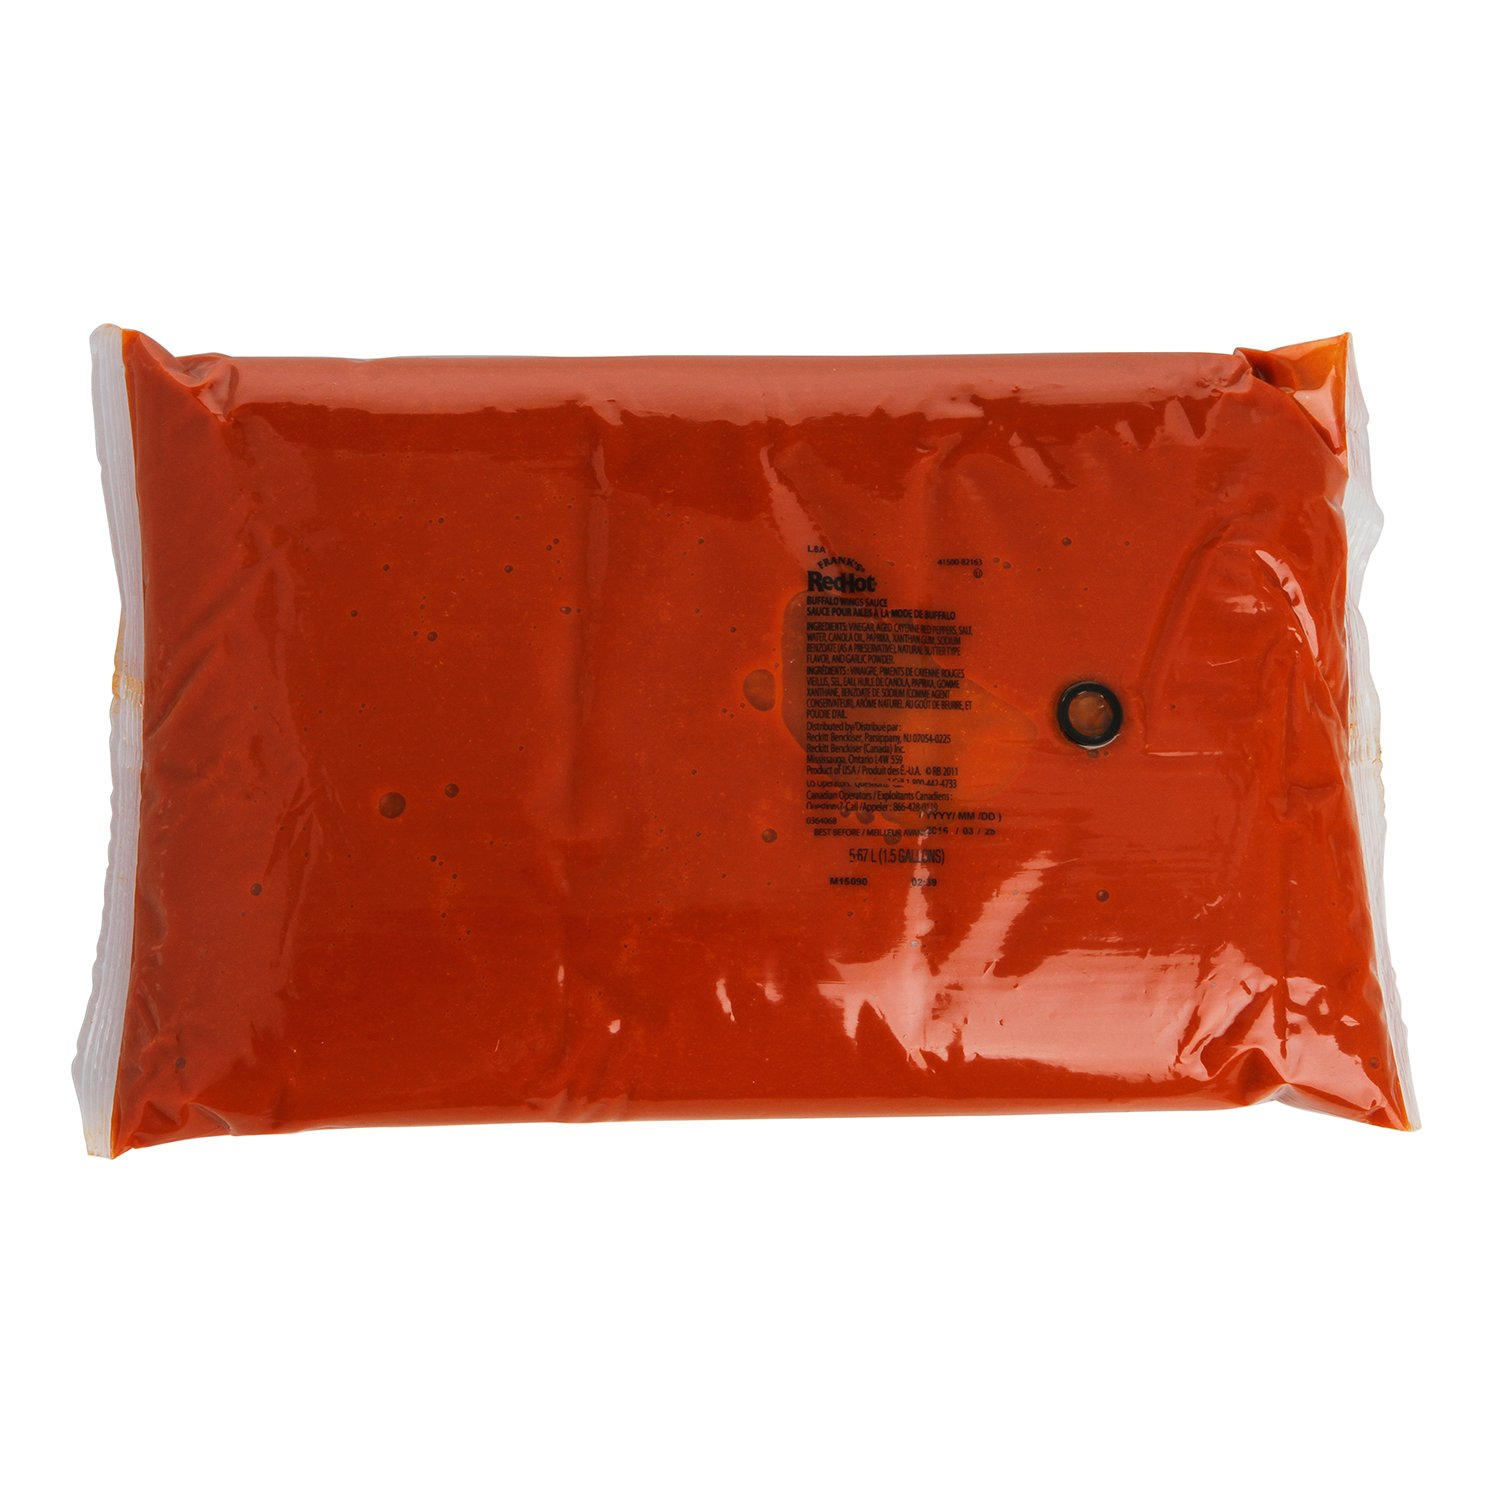 Frank's RedHot Original Buffalo Wings Sauce-Dispensing Pouch With Fitment, 1.5 gal